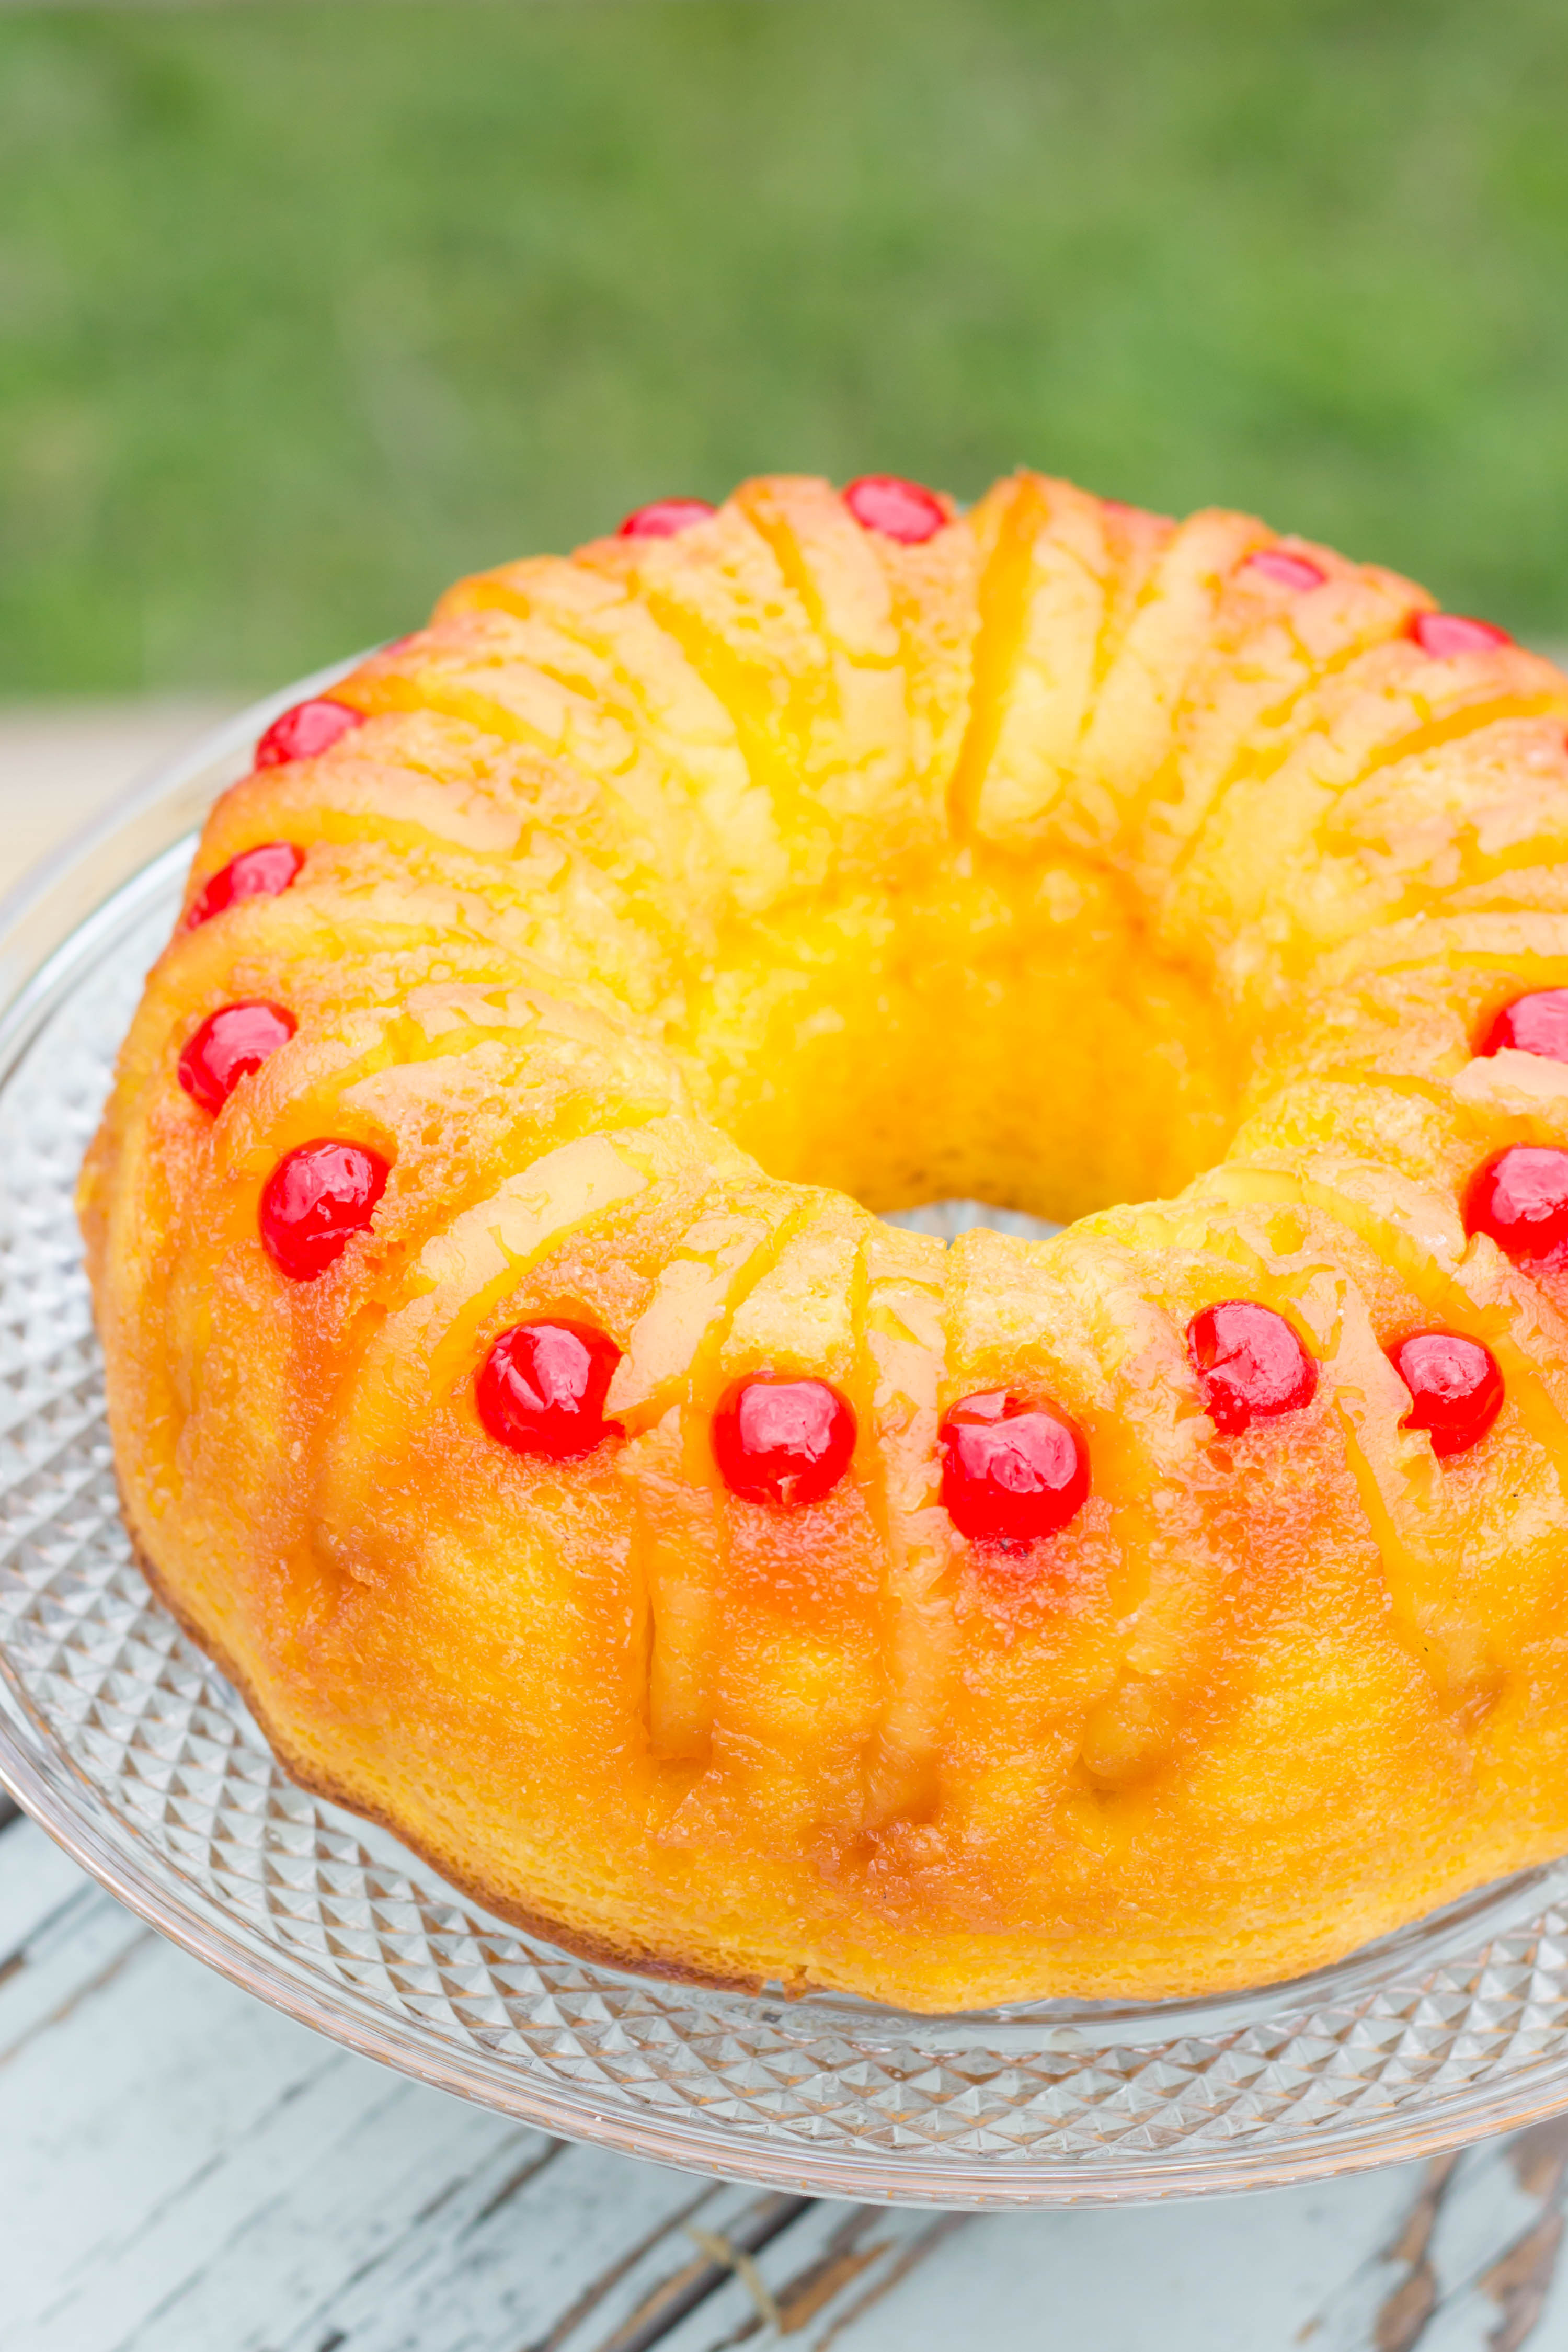 Upside Down Pineapple Bundt Cake  Pineapple Upside Down Bundt Cake Kendra s Treats